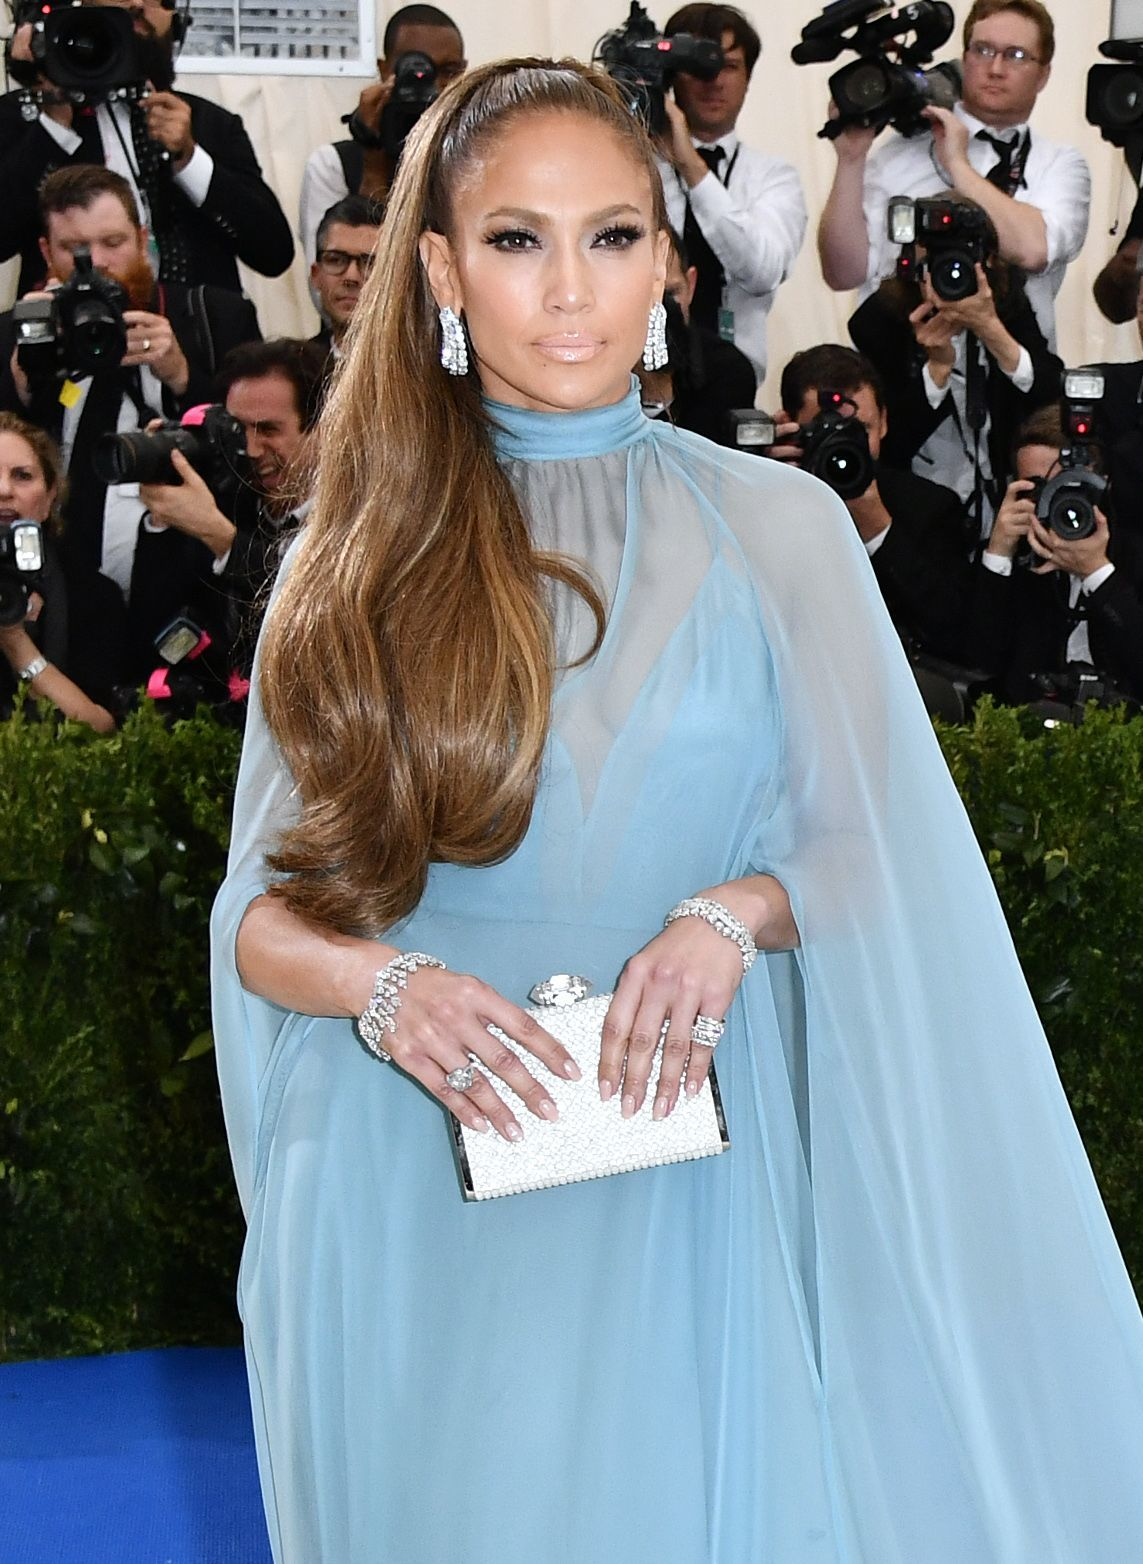 Jennifer Lopez attends the Costume Institute Benefit celebrating the opening of Rei Kawakubo/Comme des Garcons: Art of the In Between at the Metropolitan Museum of Art in New York on May 1, 2017.